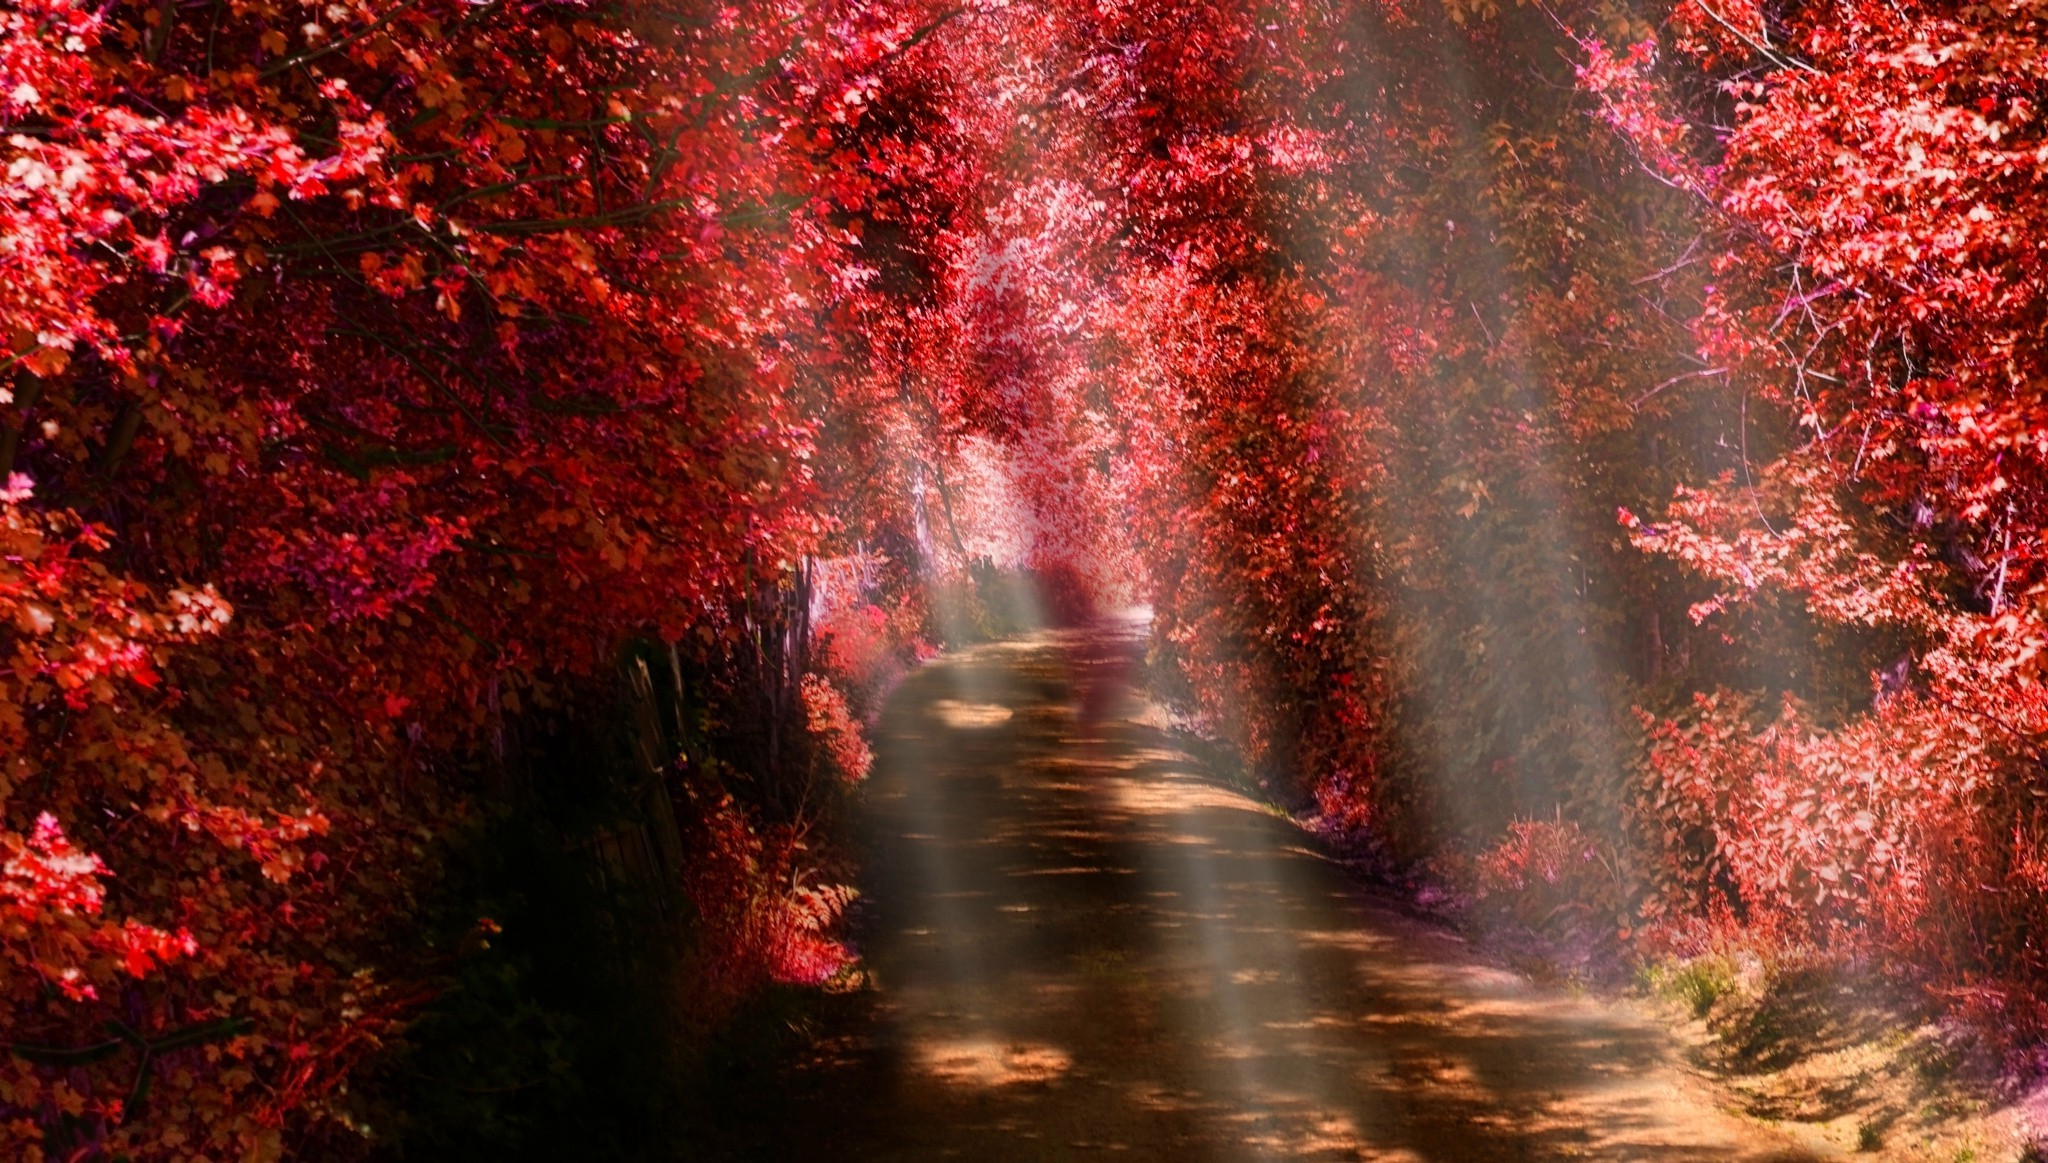 Autumn Fall Wallpaper 1600x900 Landscape Nature Sun Rays Path Fall Red Leaves